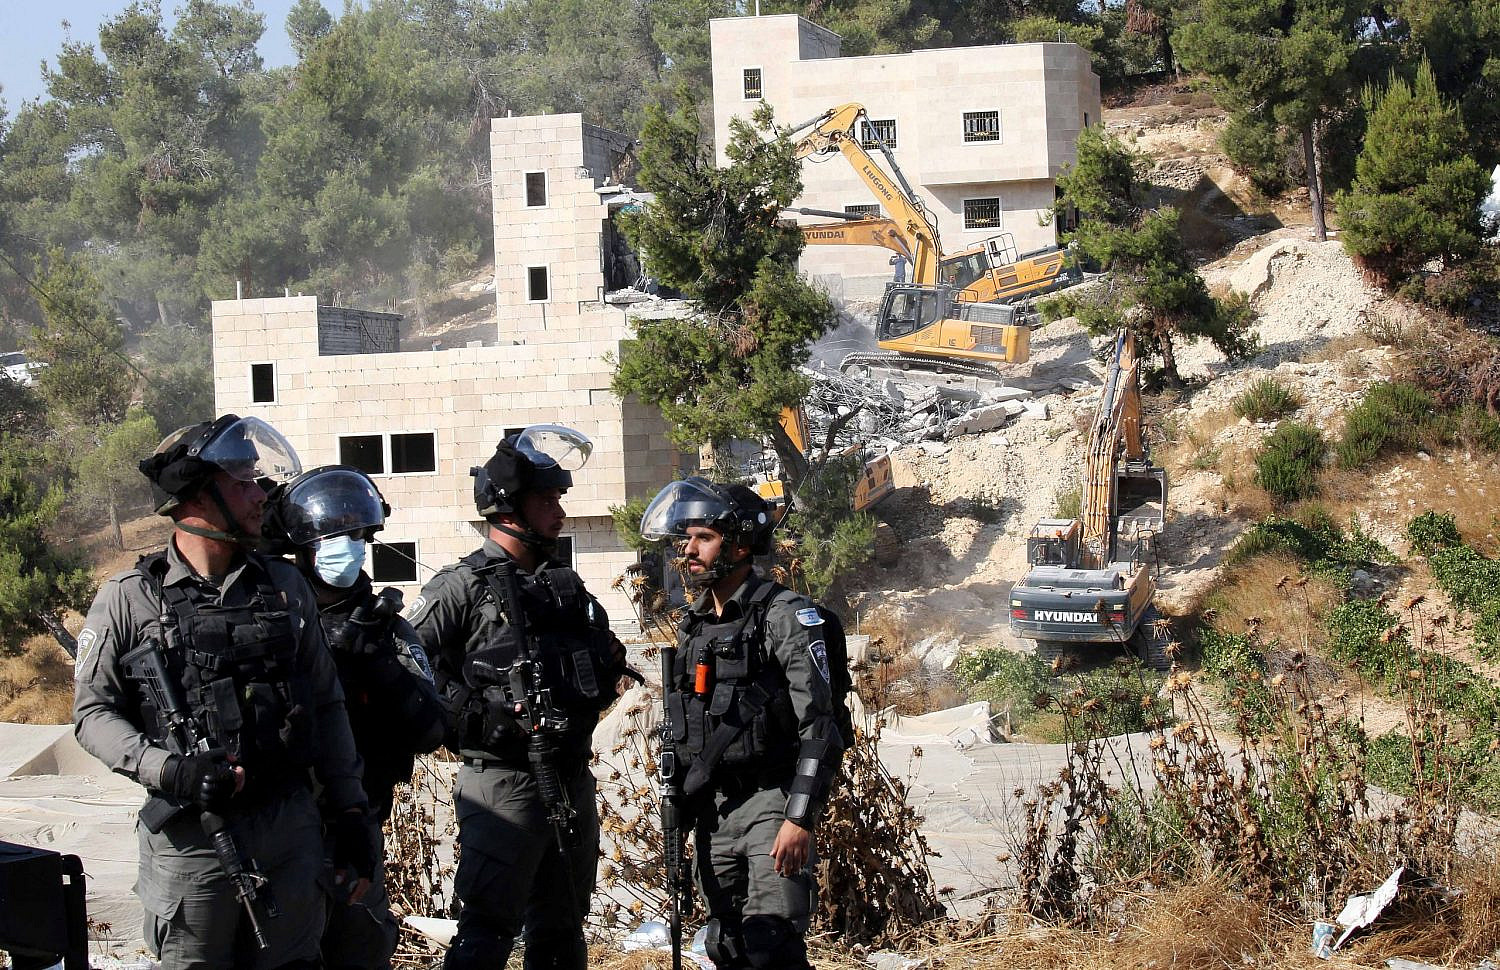 Israeli security forces demolish Palestinian houses in the village of Sair, near the West Bank city of Hebron, August 5, 2020. (Wisam Hashlamoun/Flash90)